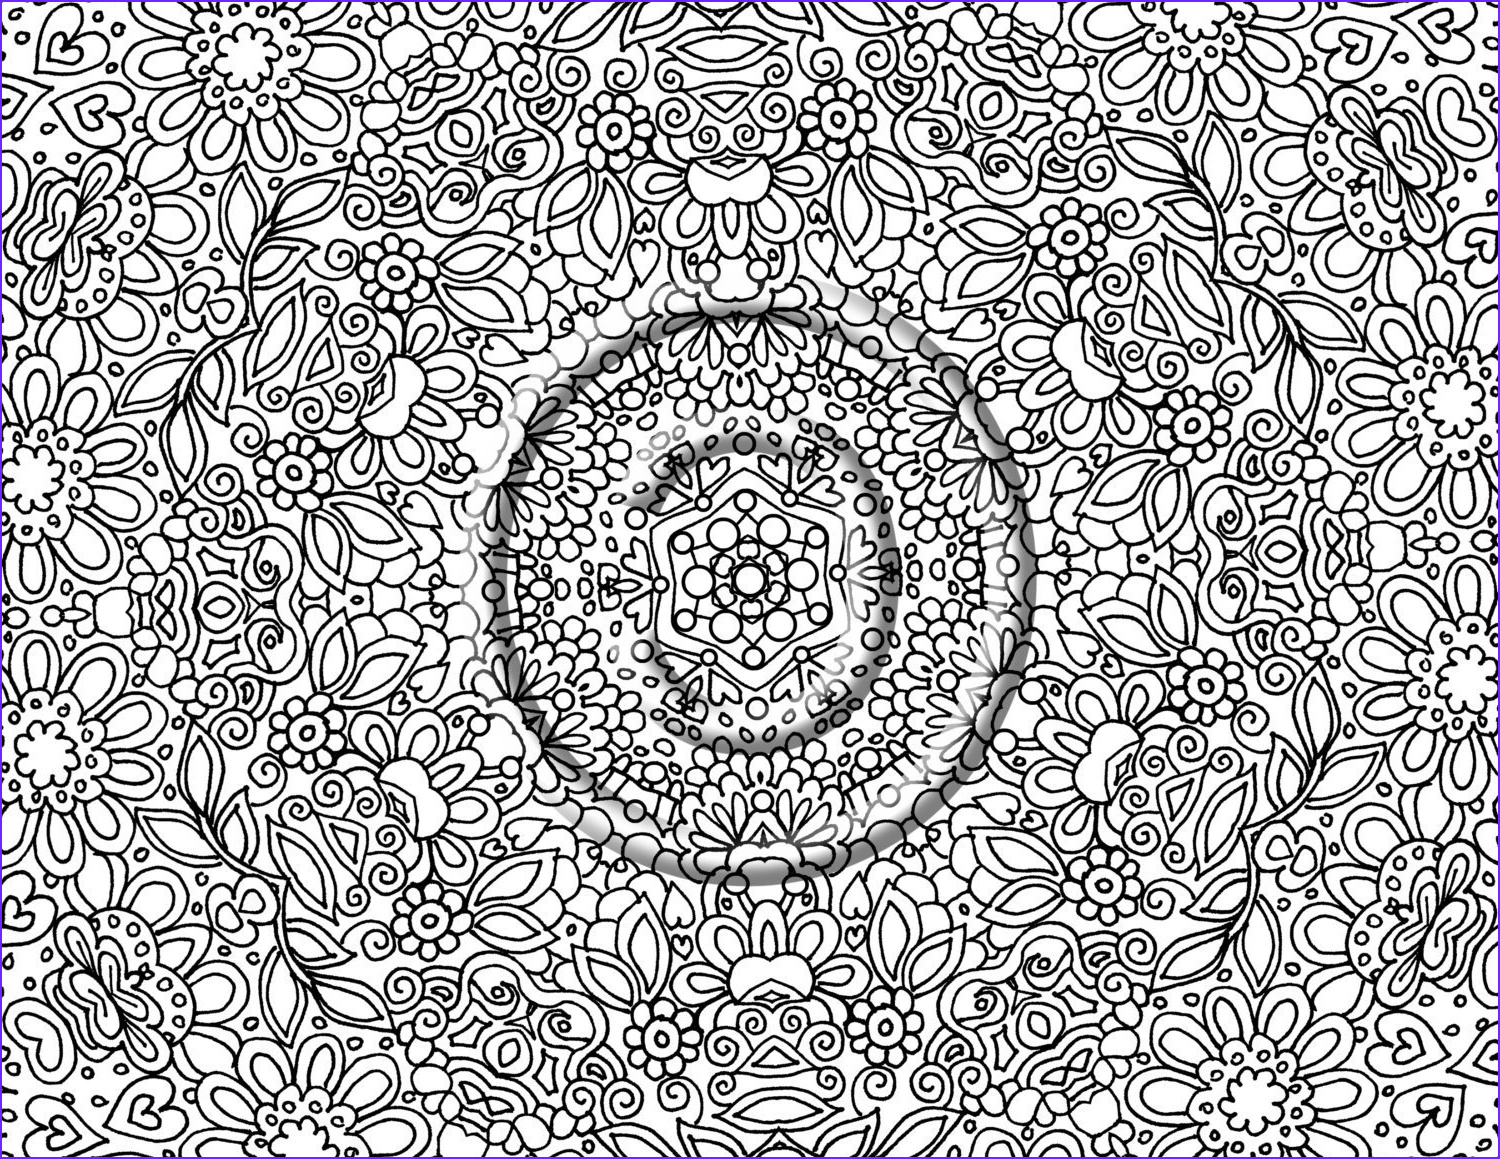 Detailed Coloring Books Awesome Photography Detailed Animal Coloring Pages Bestofcoloring